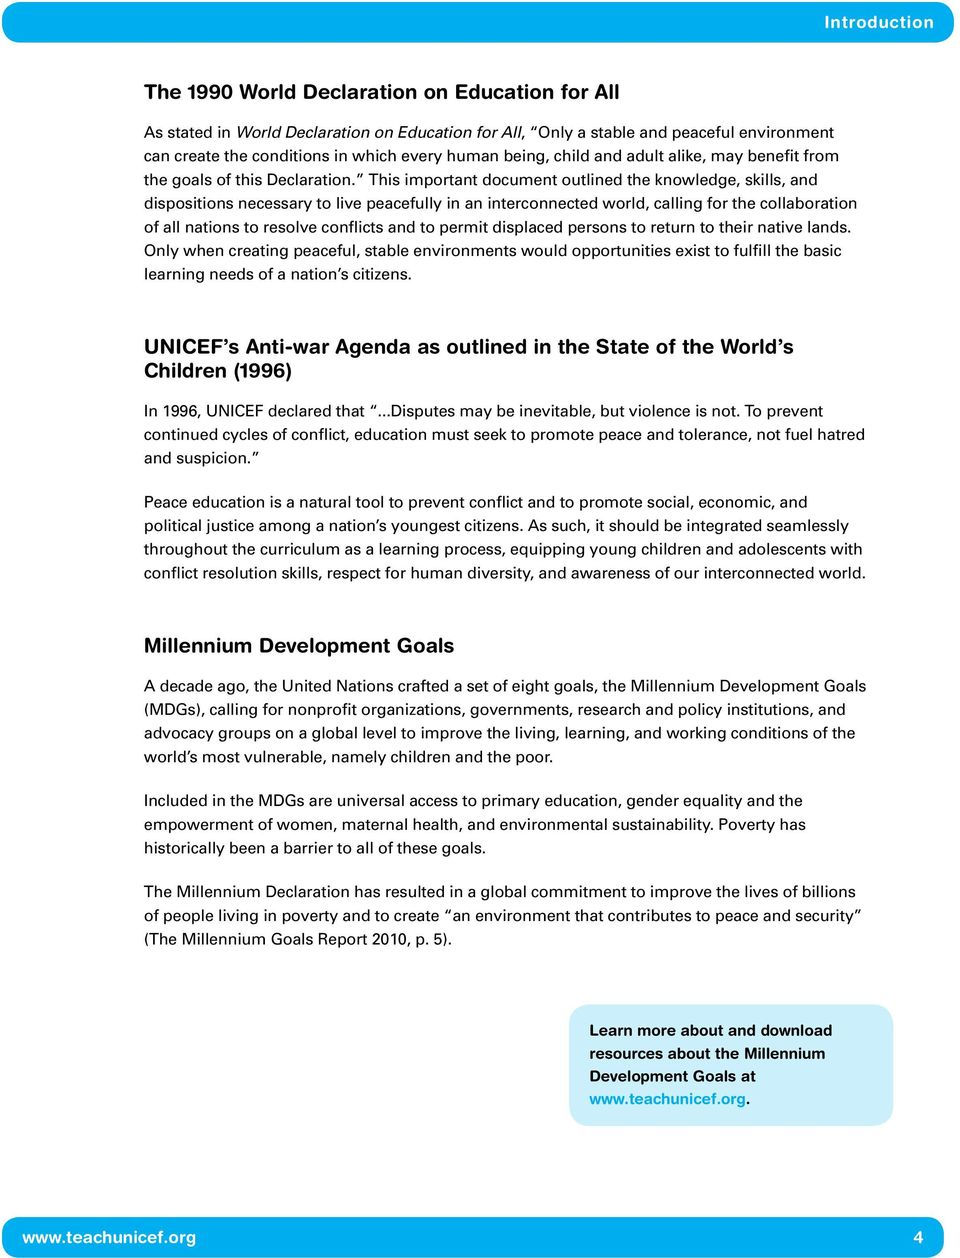 This important document outlined the knowledge, skills, and dispositions necessary to live peacefully in an interconnected world, calling for the collaboration of all nations to resolve conflicts and